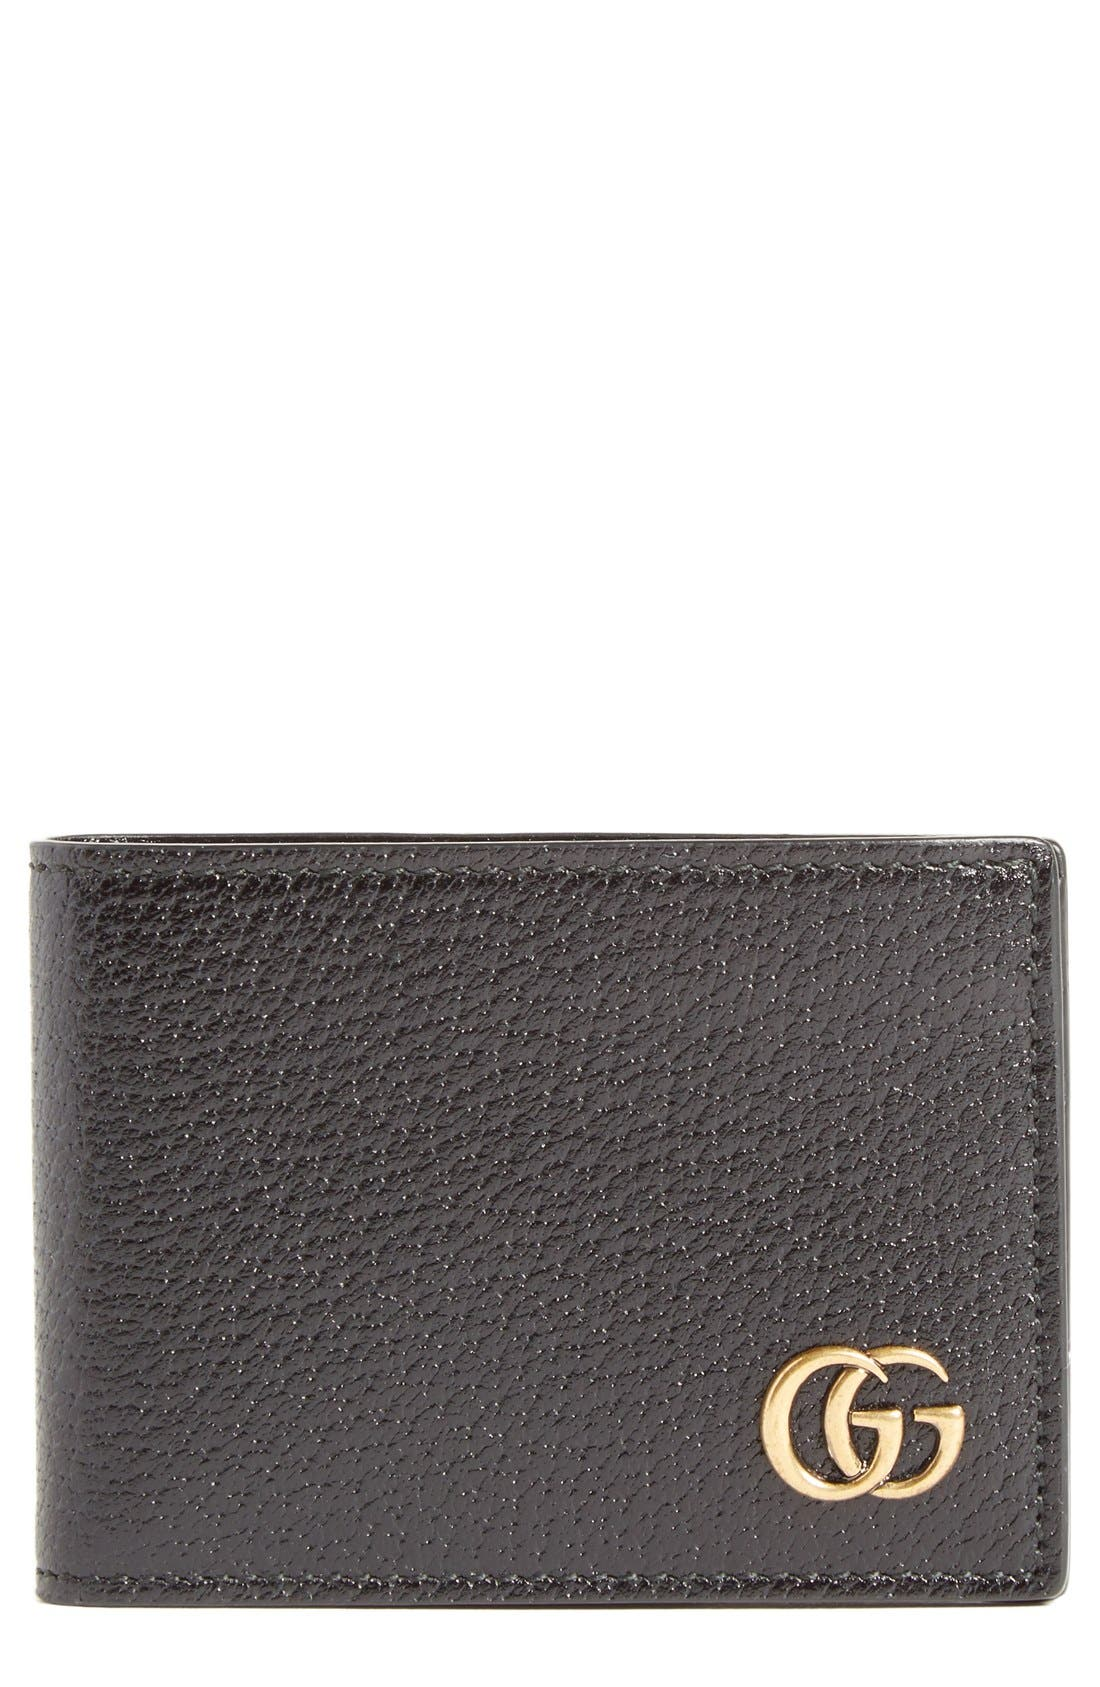 Marmont Leather Wallet,                             Main thumbnail 1, color,